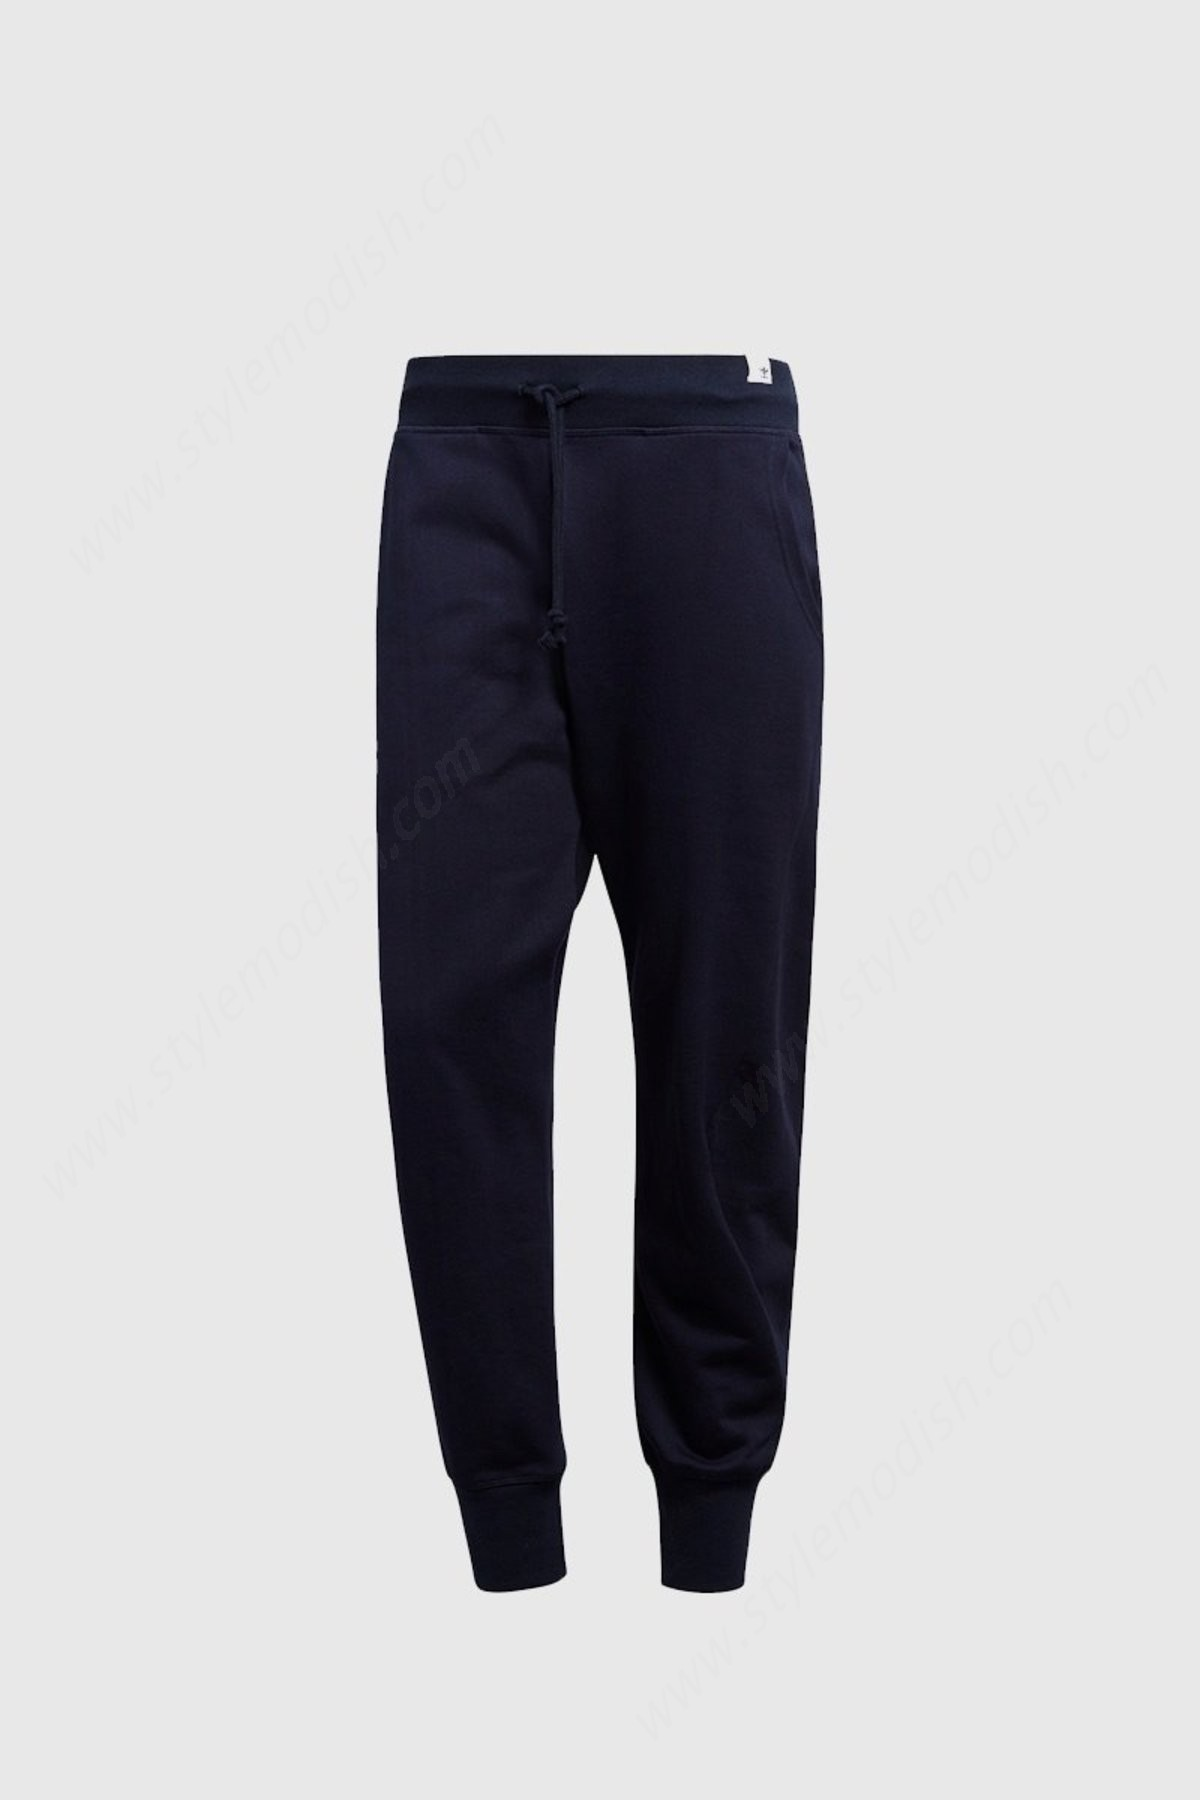 Men's Adidas Originals Xbyo Sweatpant - Legend Ink - Men's Adidas Originals Xbyo Sweatpant - Legend Ink